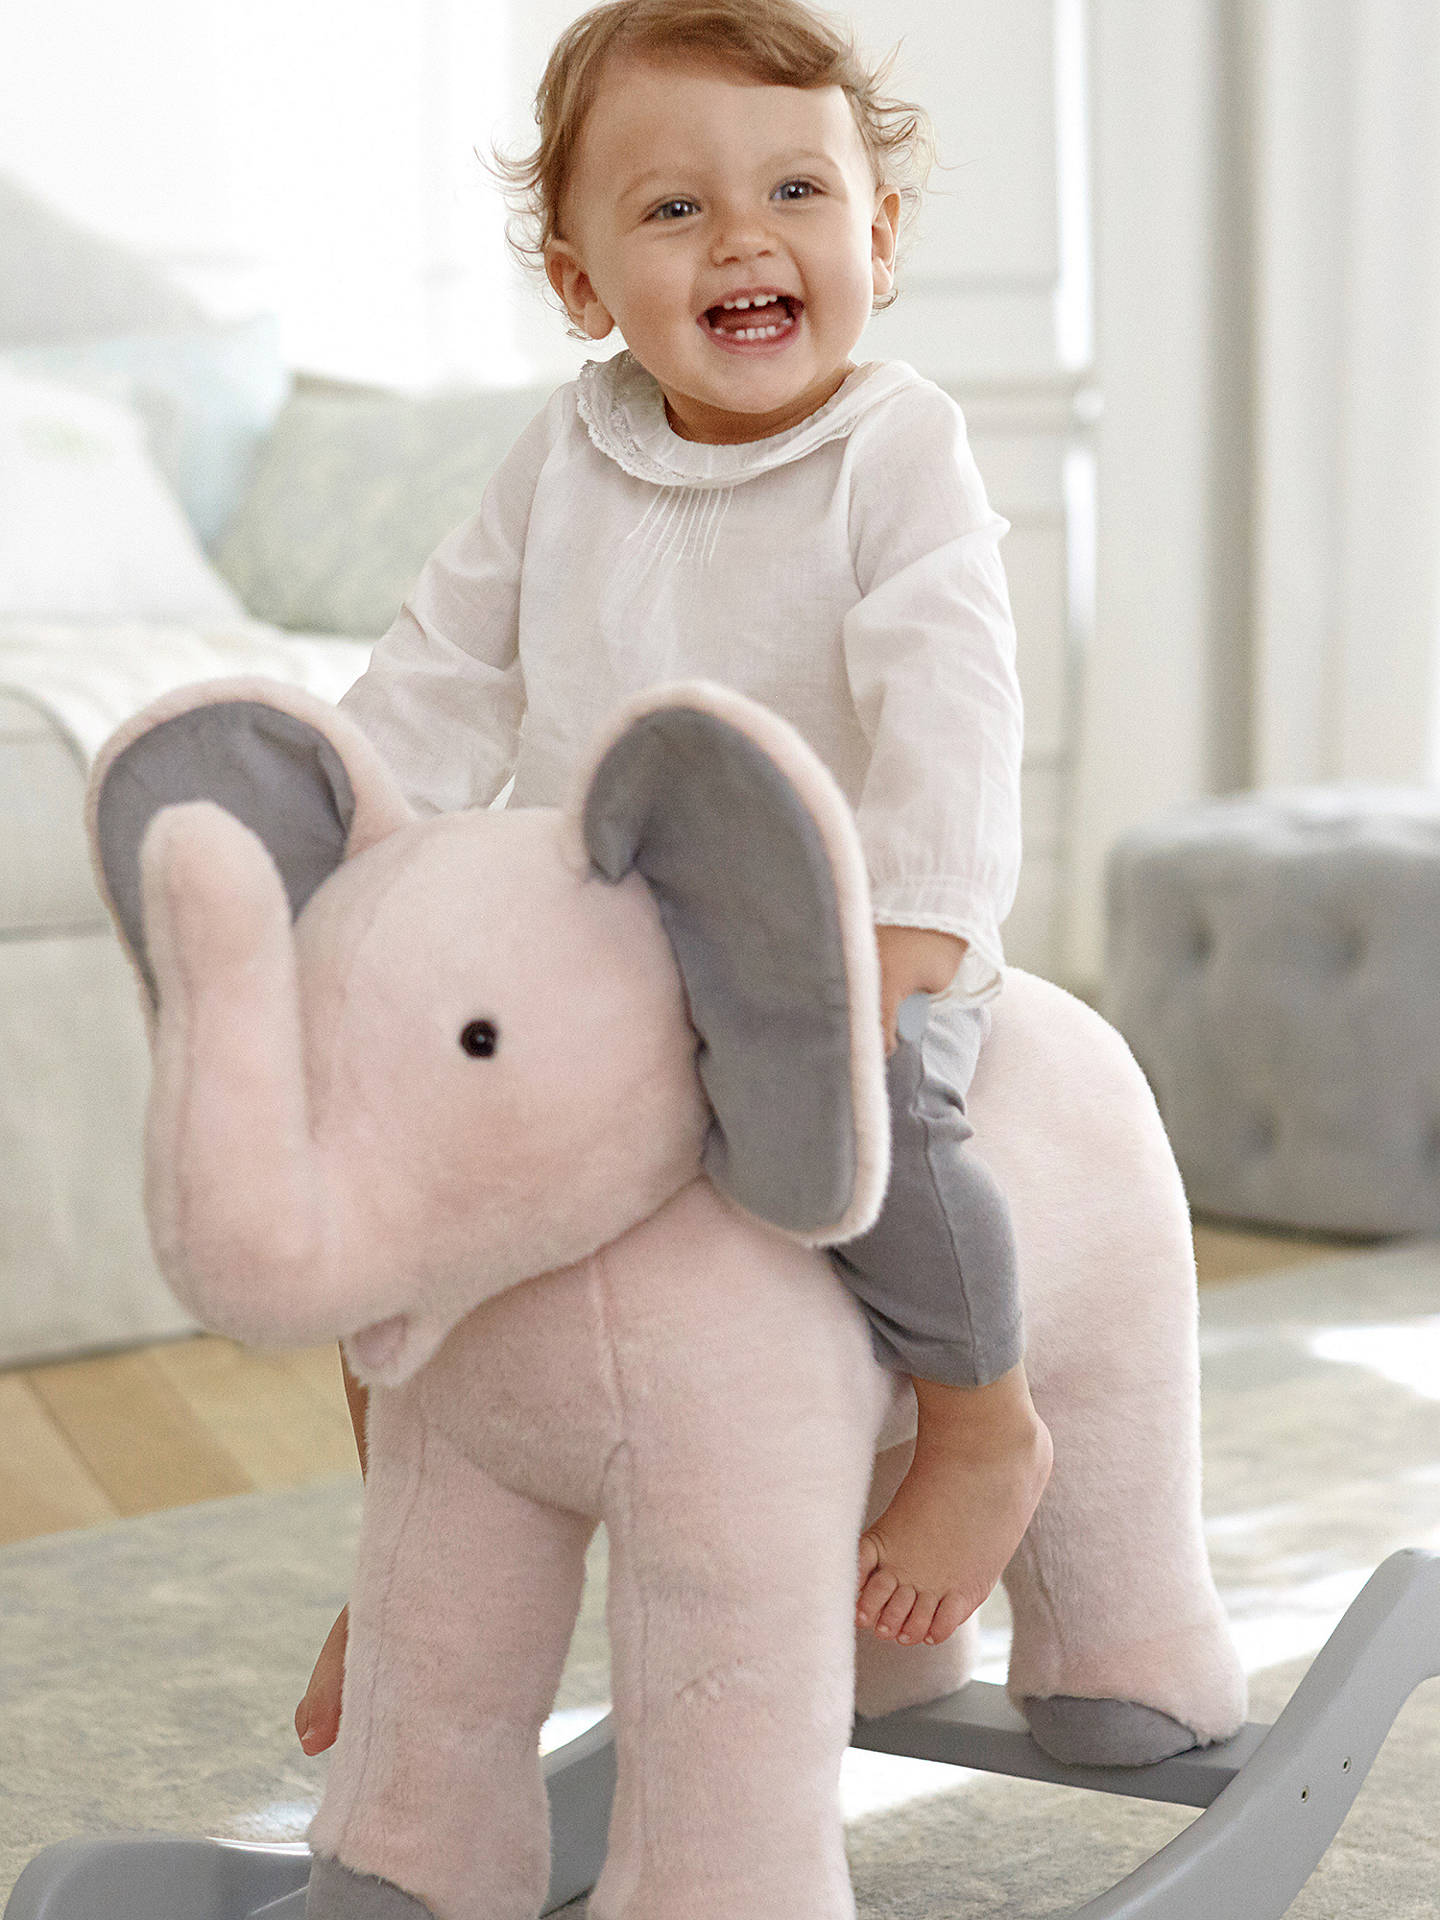 Buy Pottery Barn Kids Monique Lhuillier Plush Rocking Elephant Online at johnlewis.com